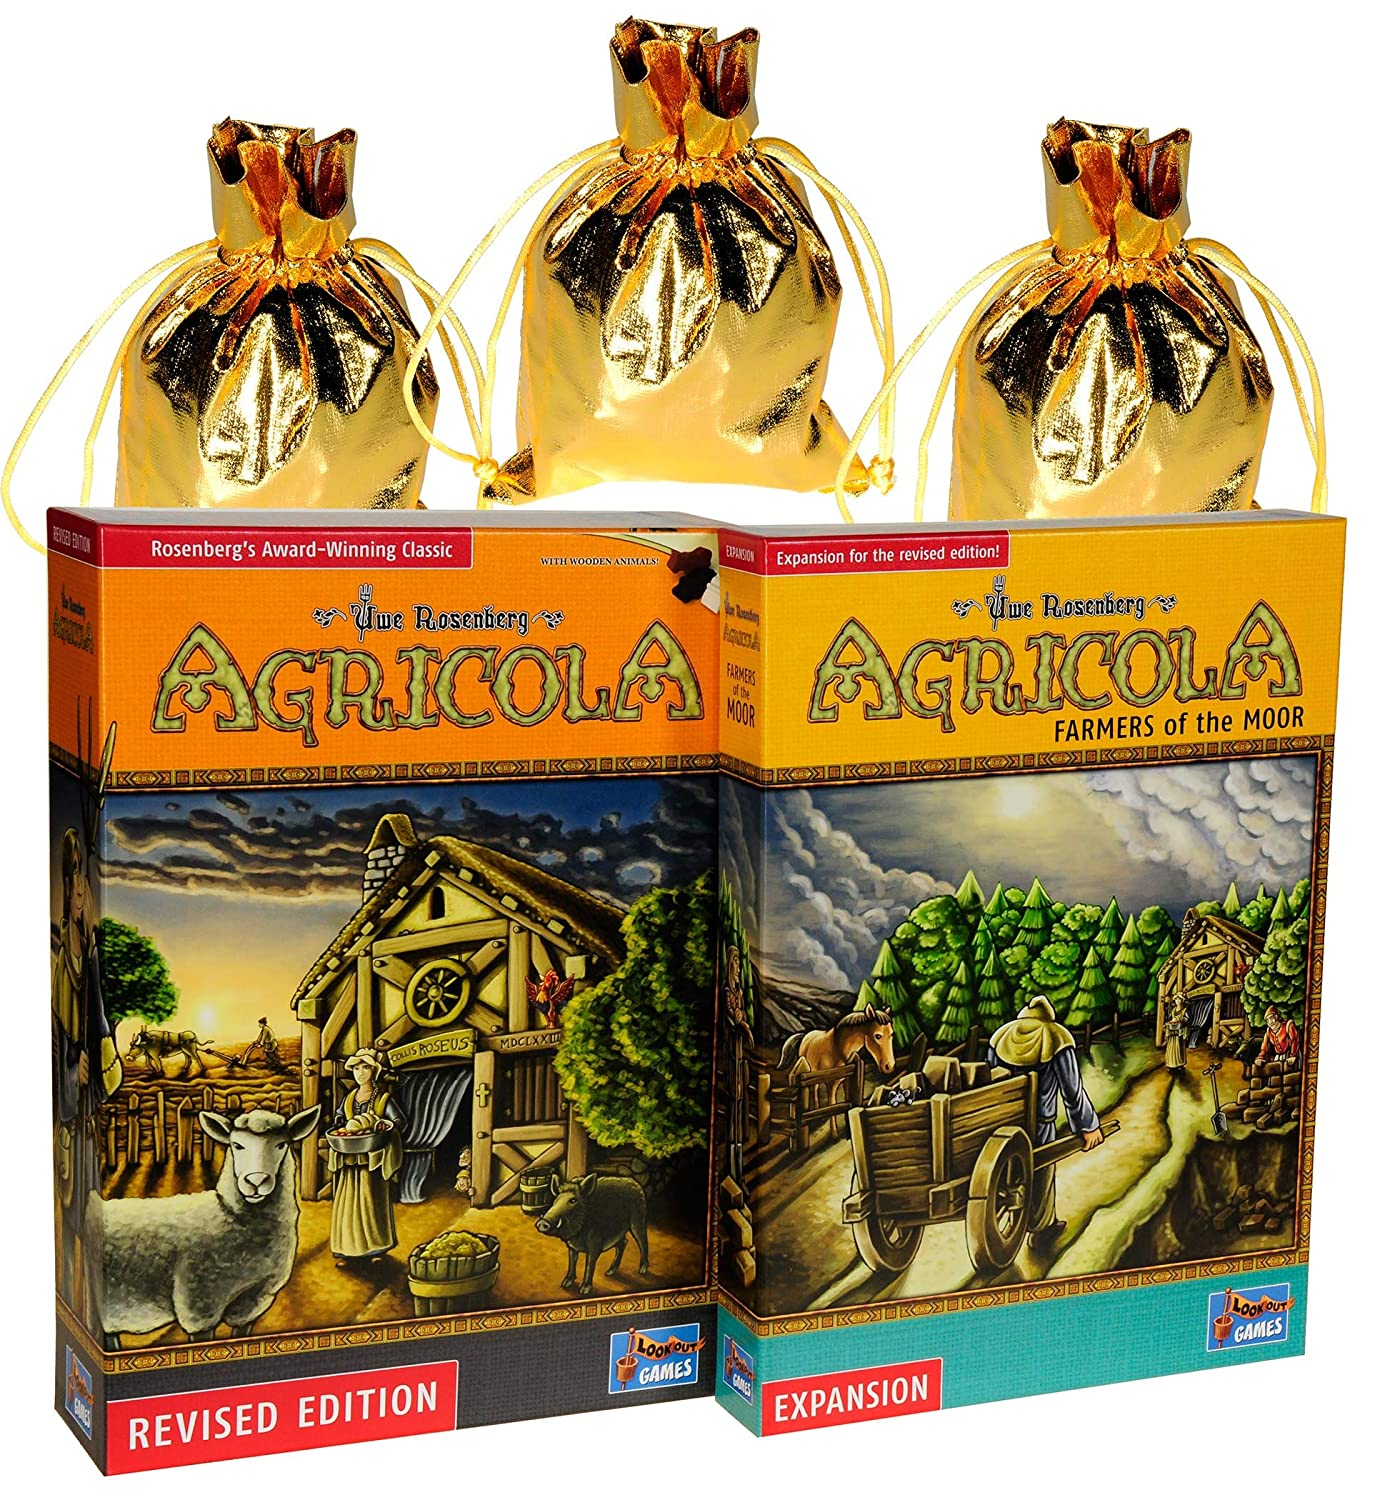 Bundled Items LookoutG Agricola Game Revised Edition Farmers The Moor Expansion Bonus 3 Gold Metallic Cloth Drawstring Storage Pouches